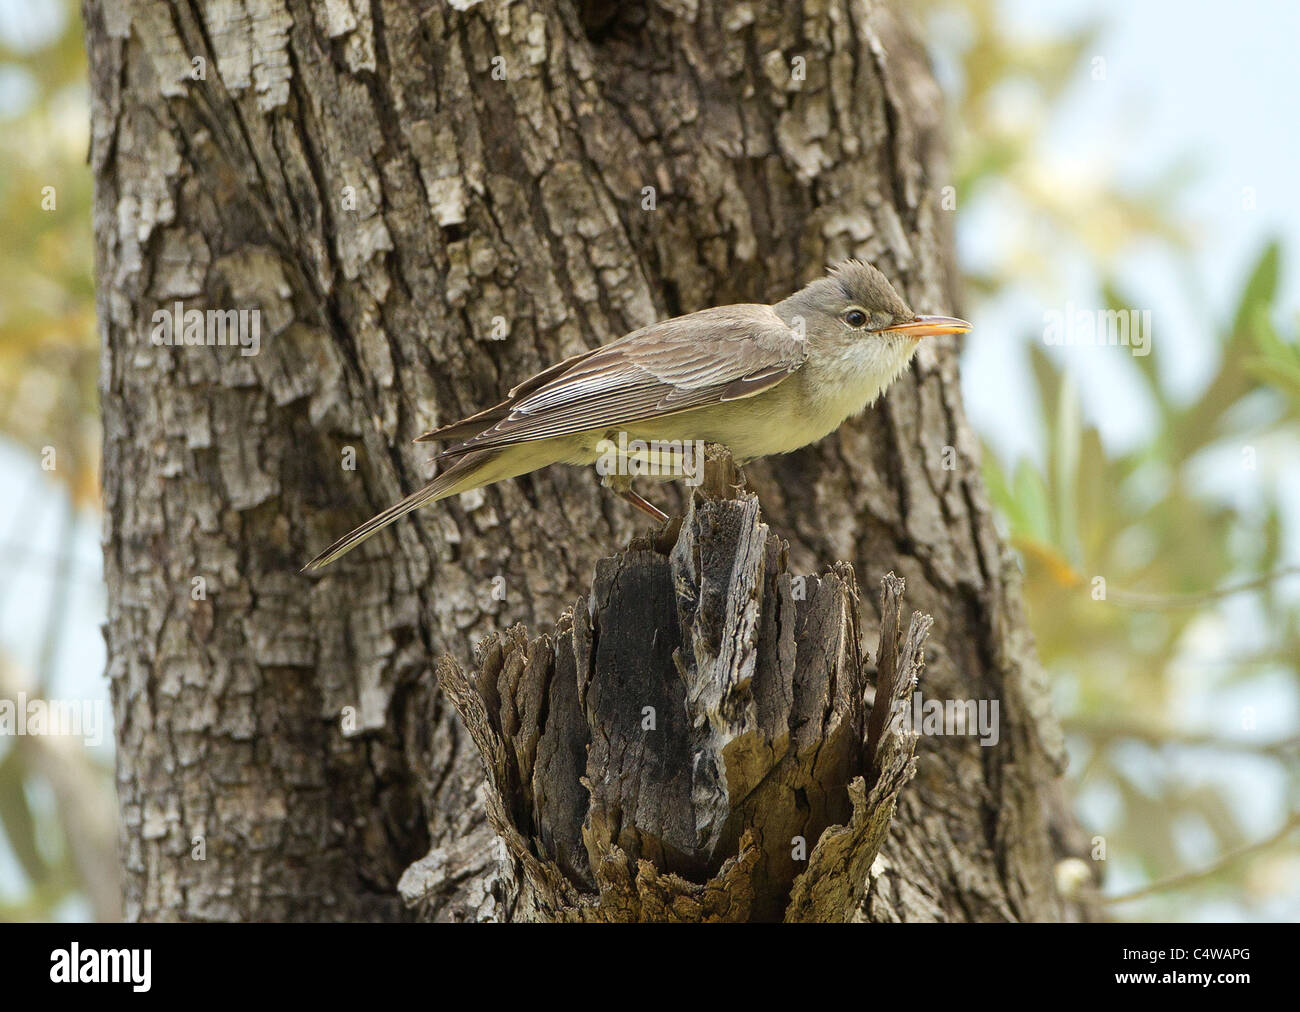 Olive tree Warbler Hippolais olivetorum on territory in olive grove Southern Turkey May Stock Photo